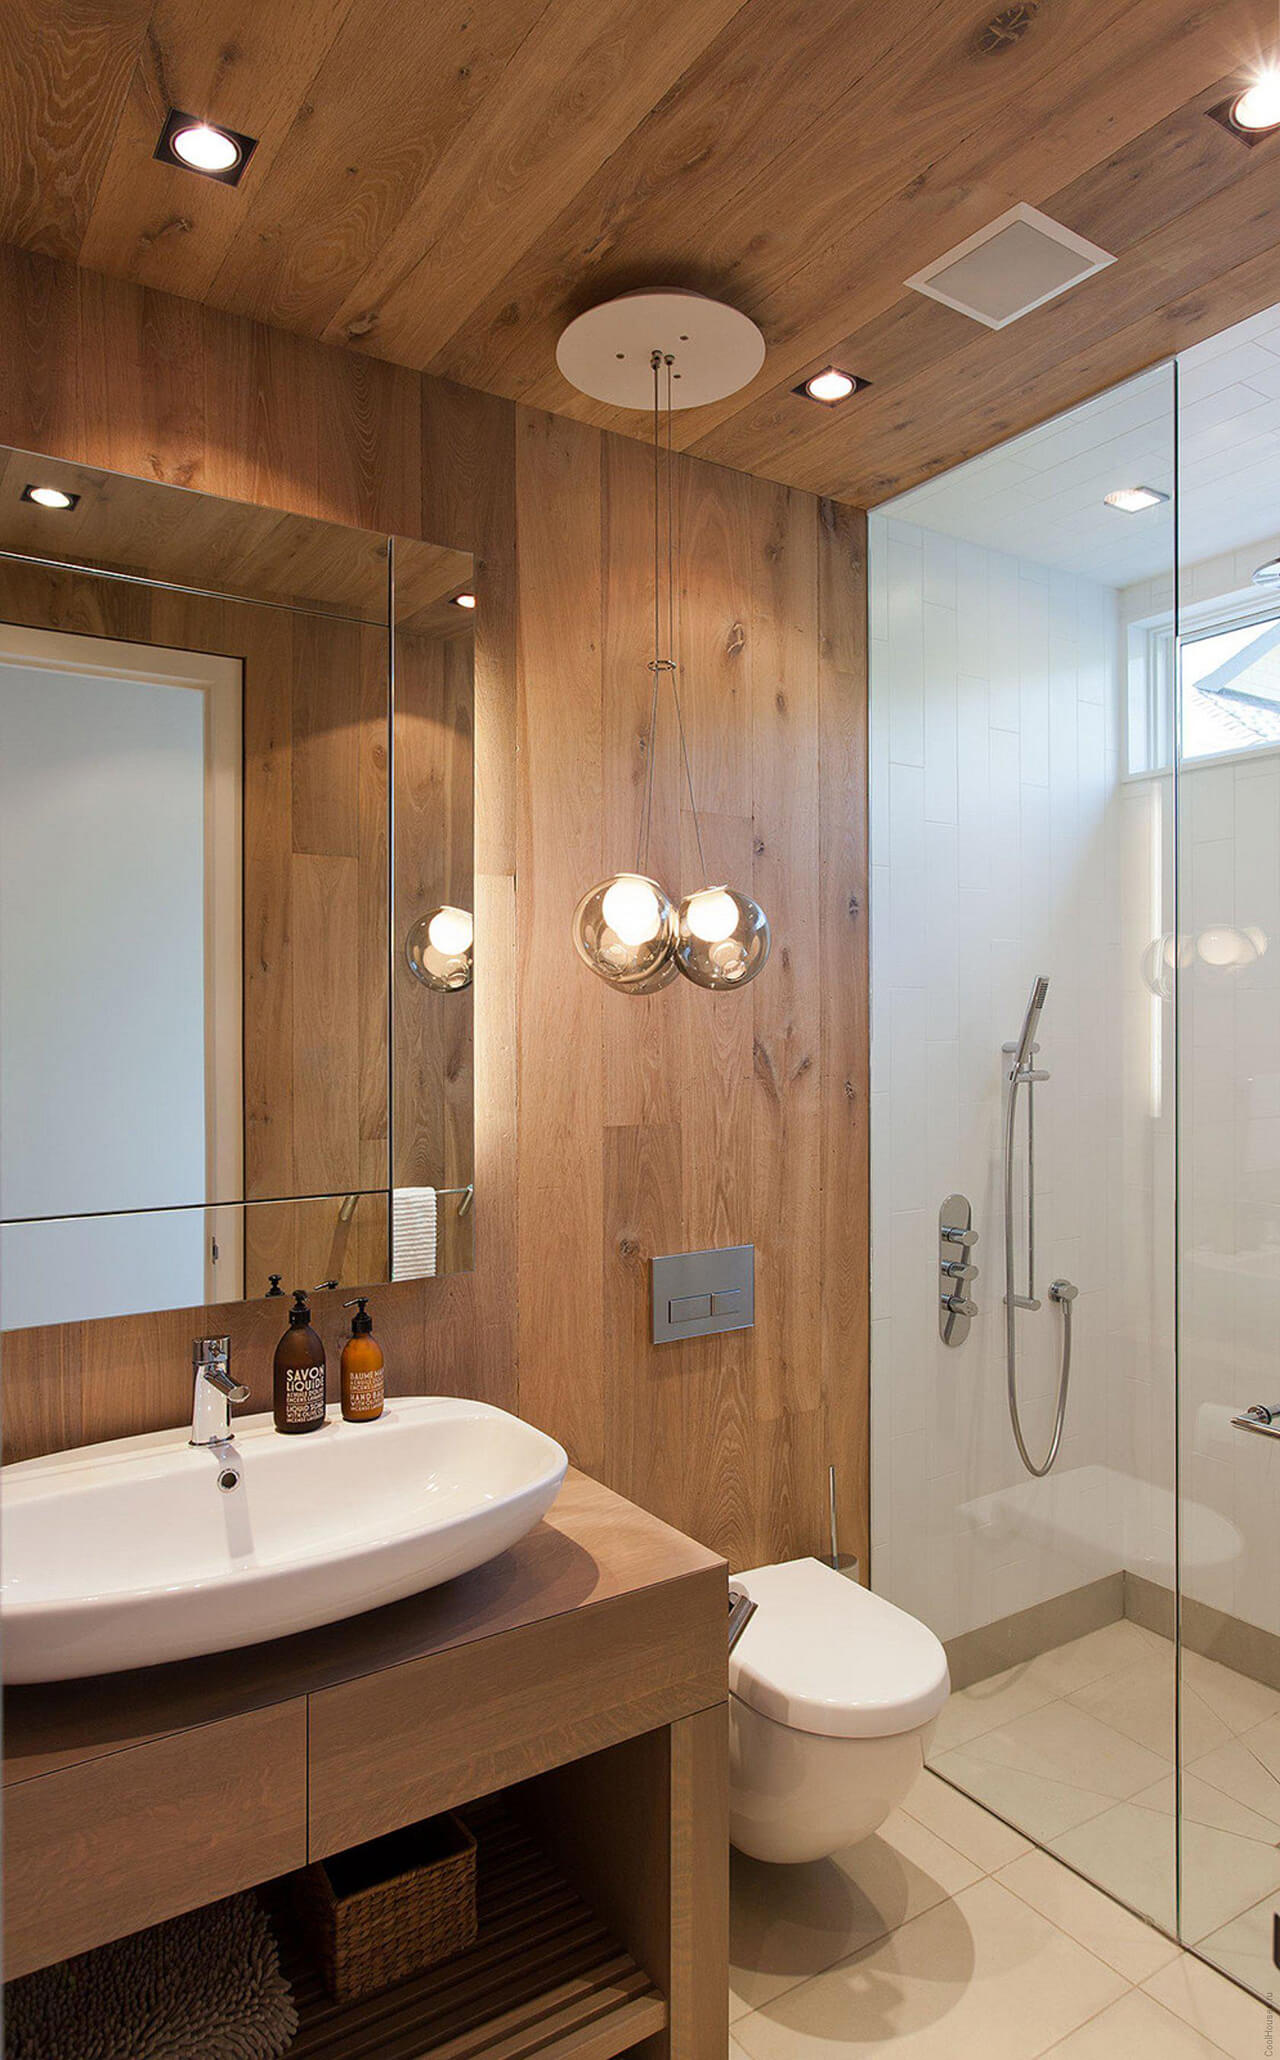 Best Small Bathroom Designs. 21 Fragrant And Warming Cedar Sauna